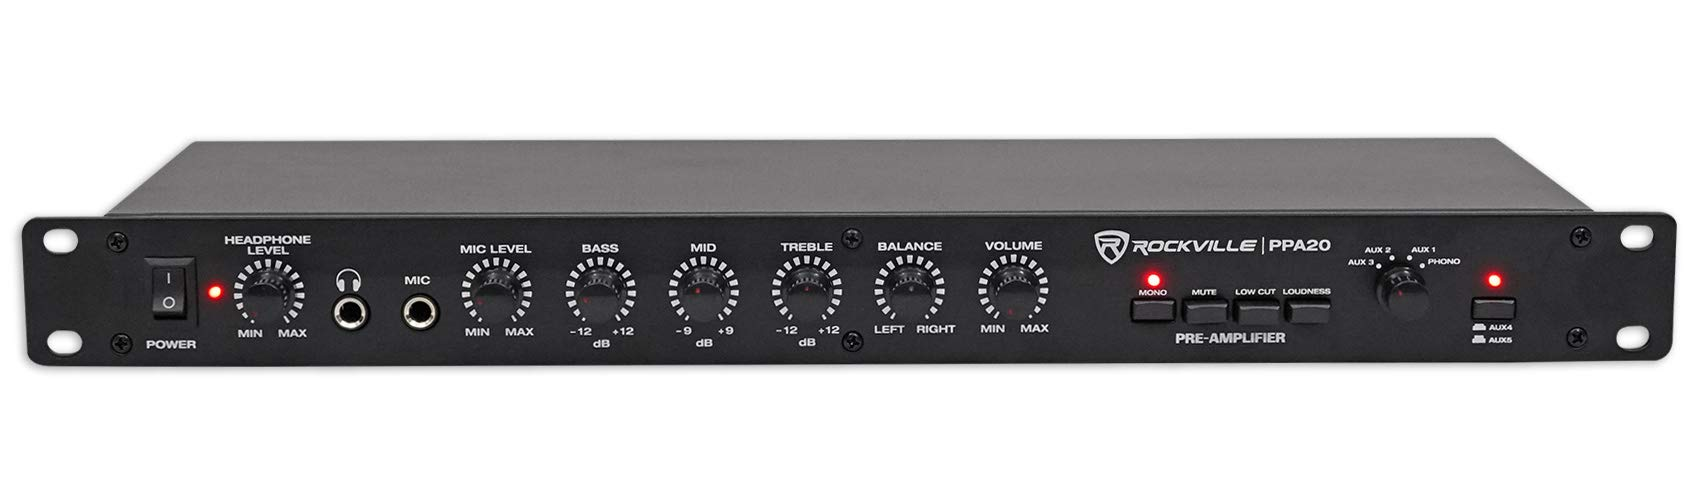 Rockville PPA20 Professional Pre Amplifier Crossover